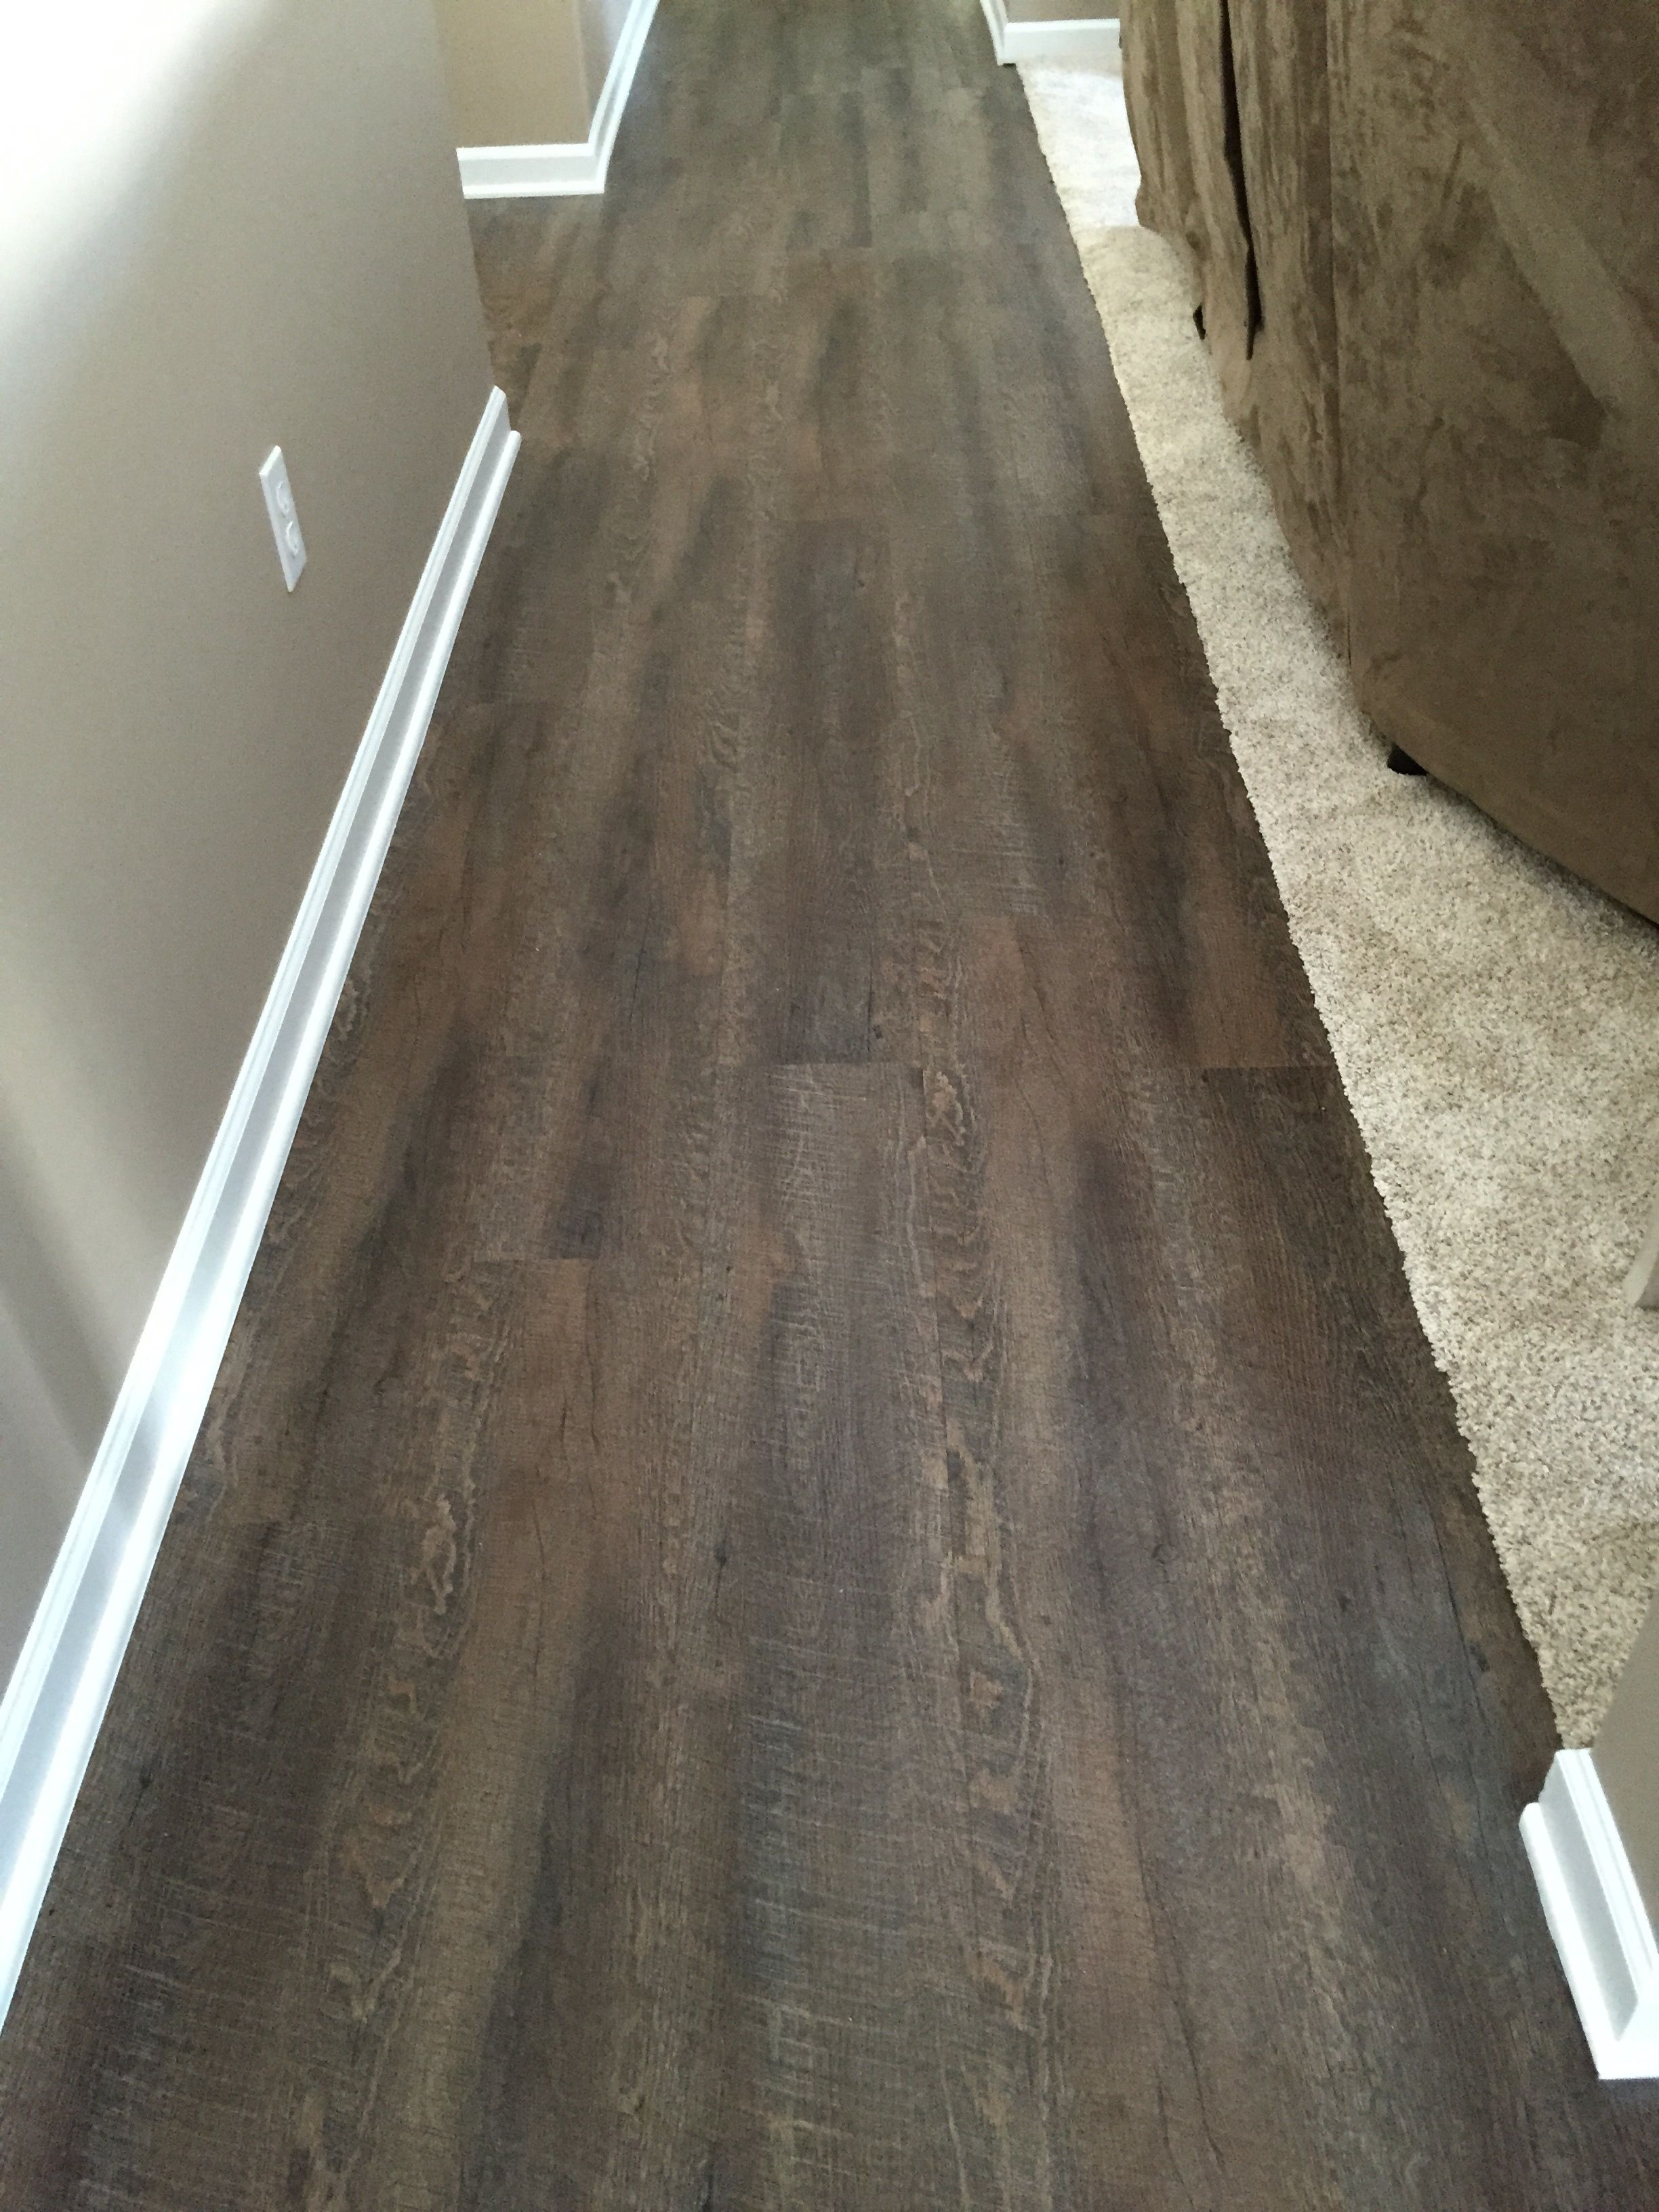 home depot kitchen flooring This is the flooring we are doing Home depot TrafficMaster Allure Sawcut Dakota Vinyl Planks